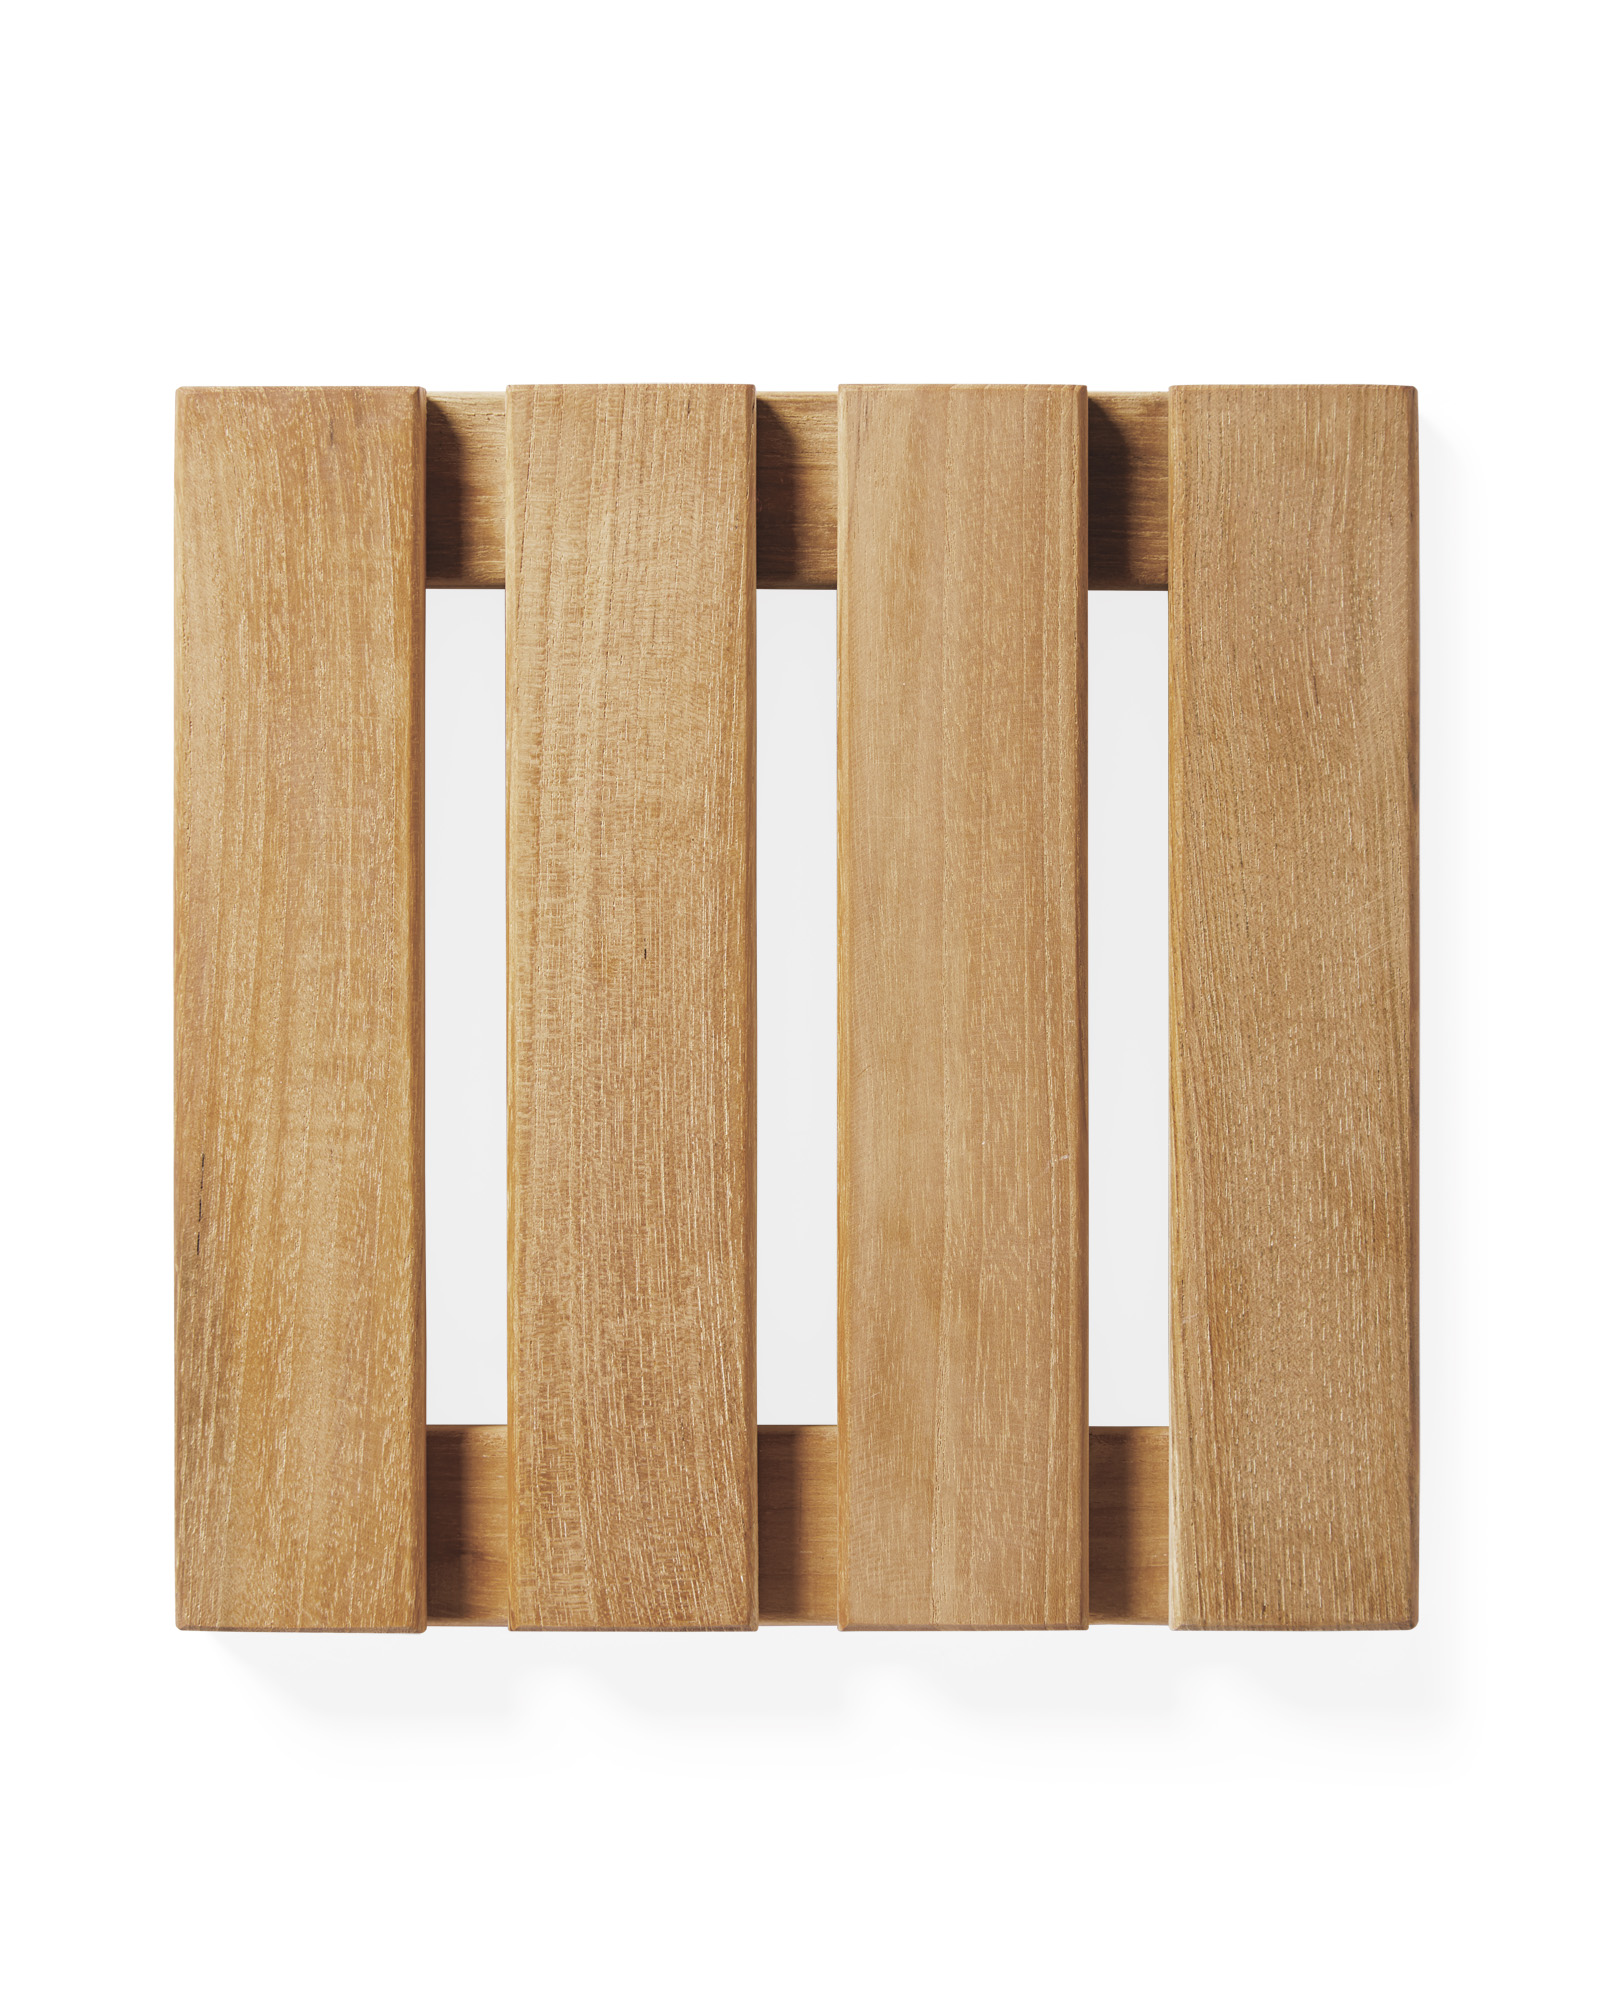 Teak Furniture Swatch - Natural,